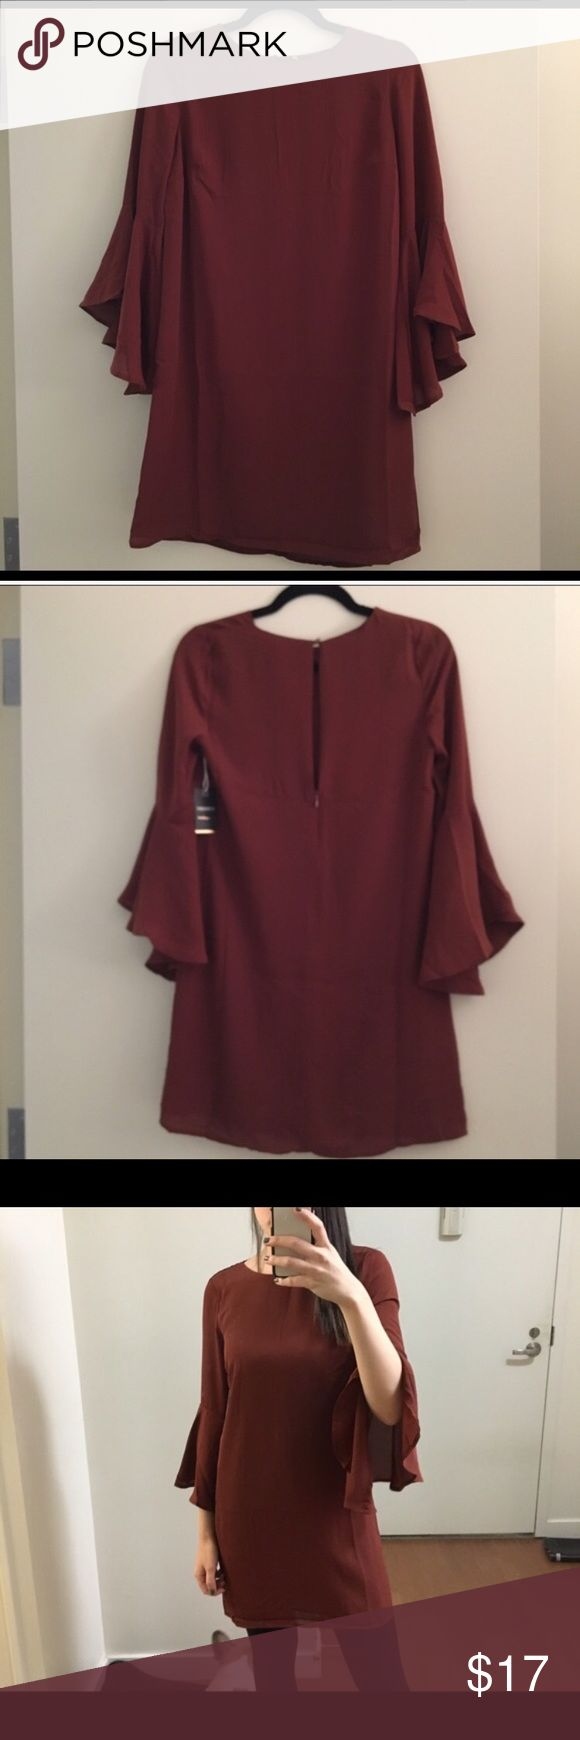 Brown Mini Dress Zipper in back. New with tag Forever 21 Dresses Mini